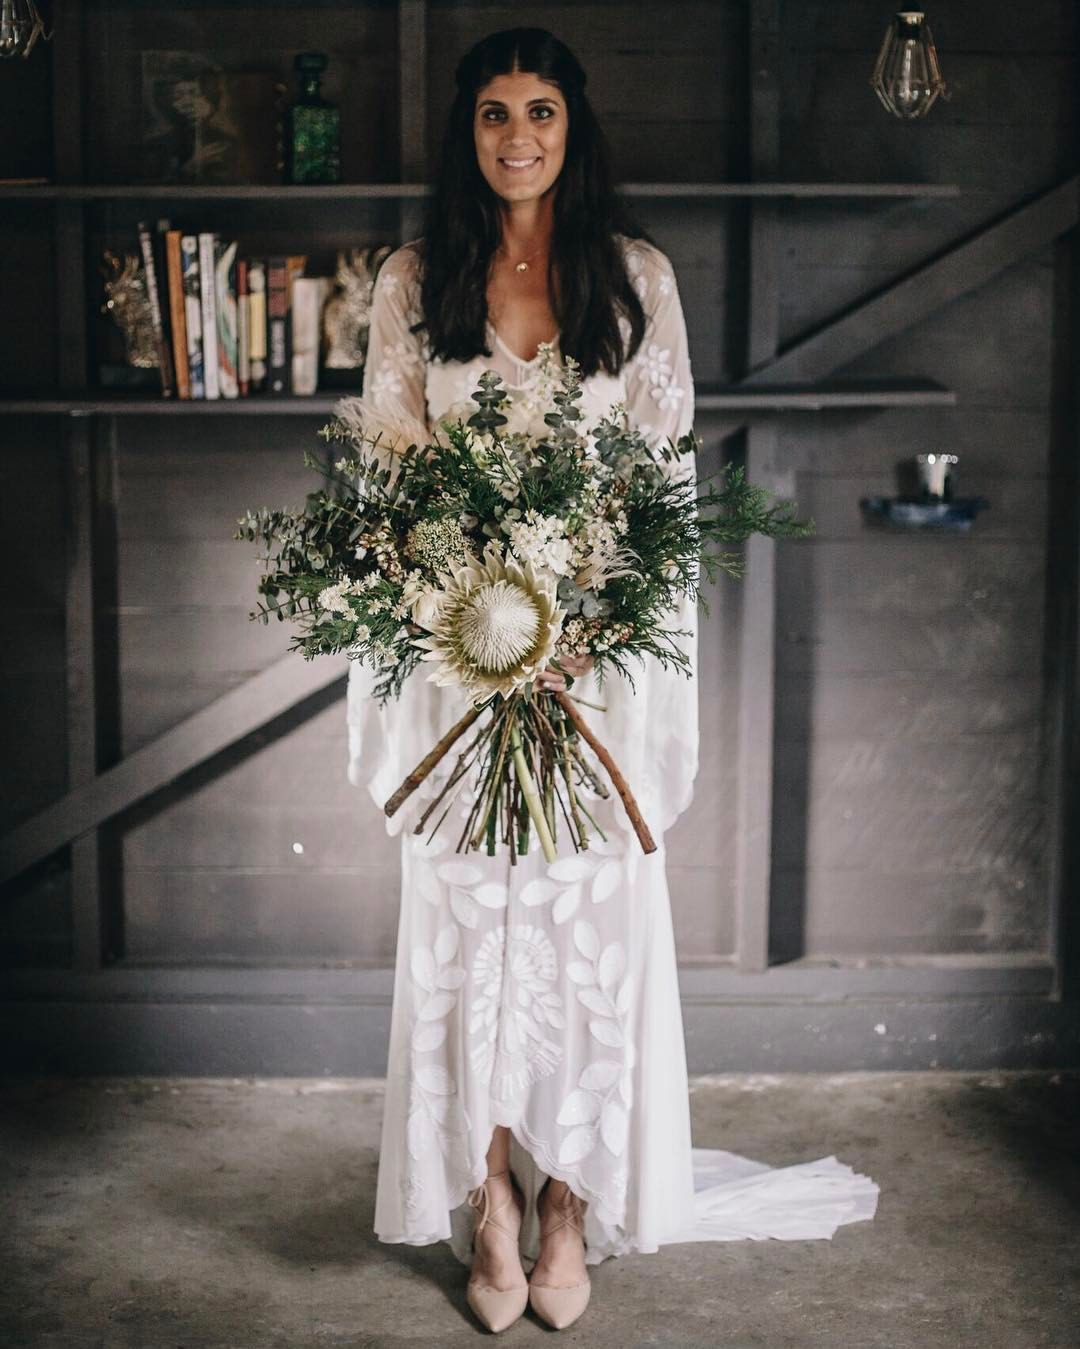 ness on her wedding day with flowers designed by her